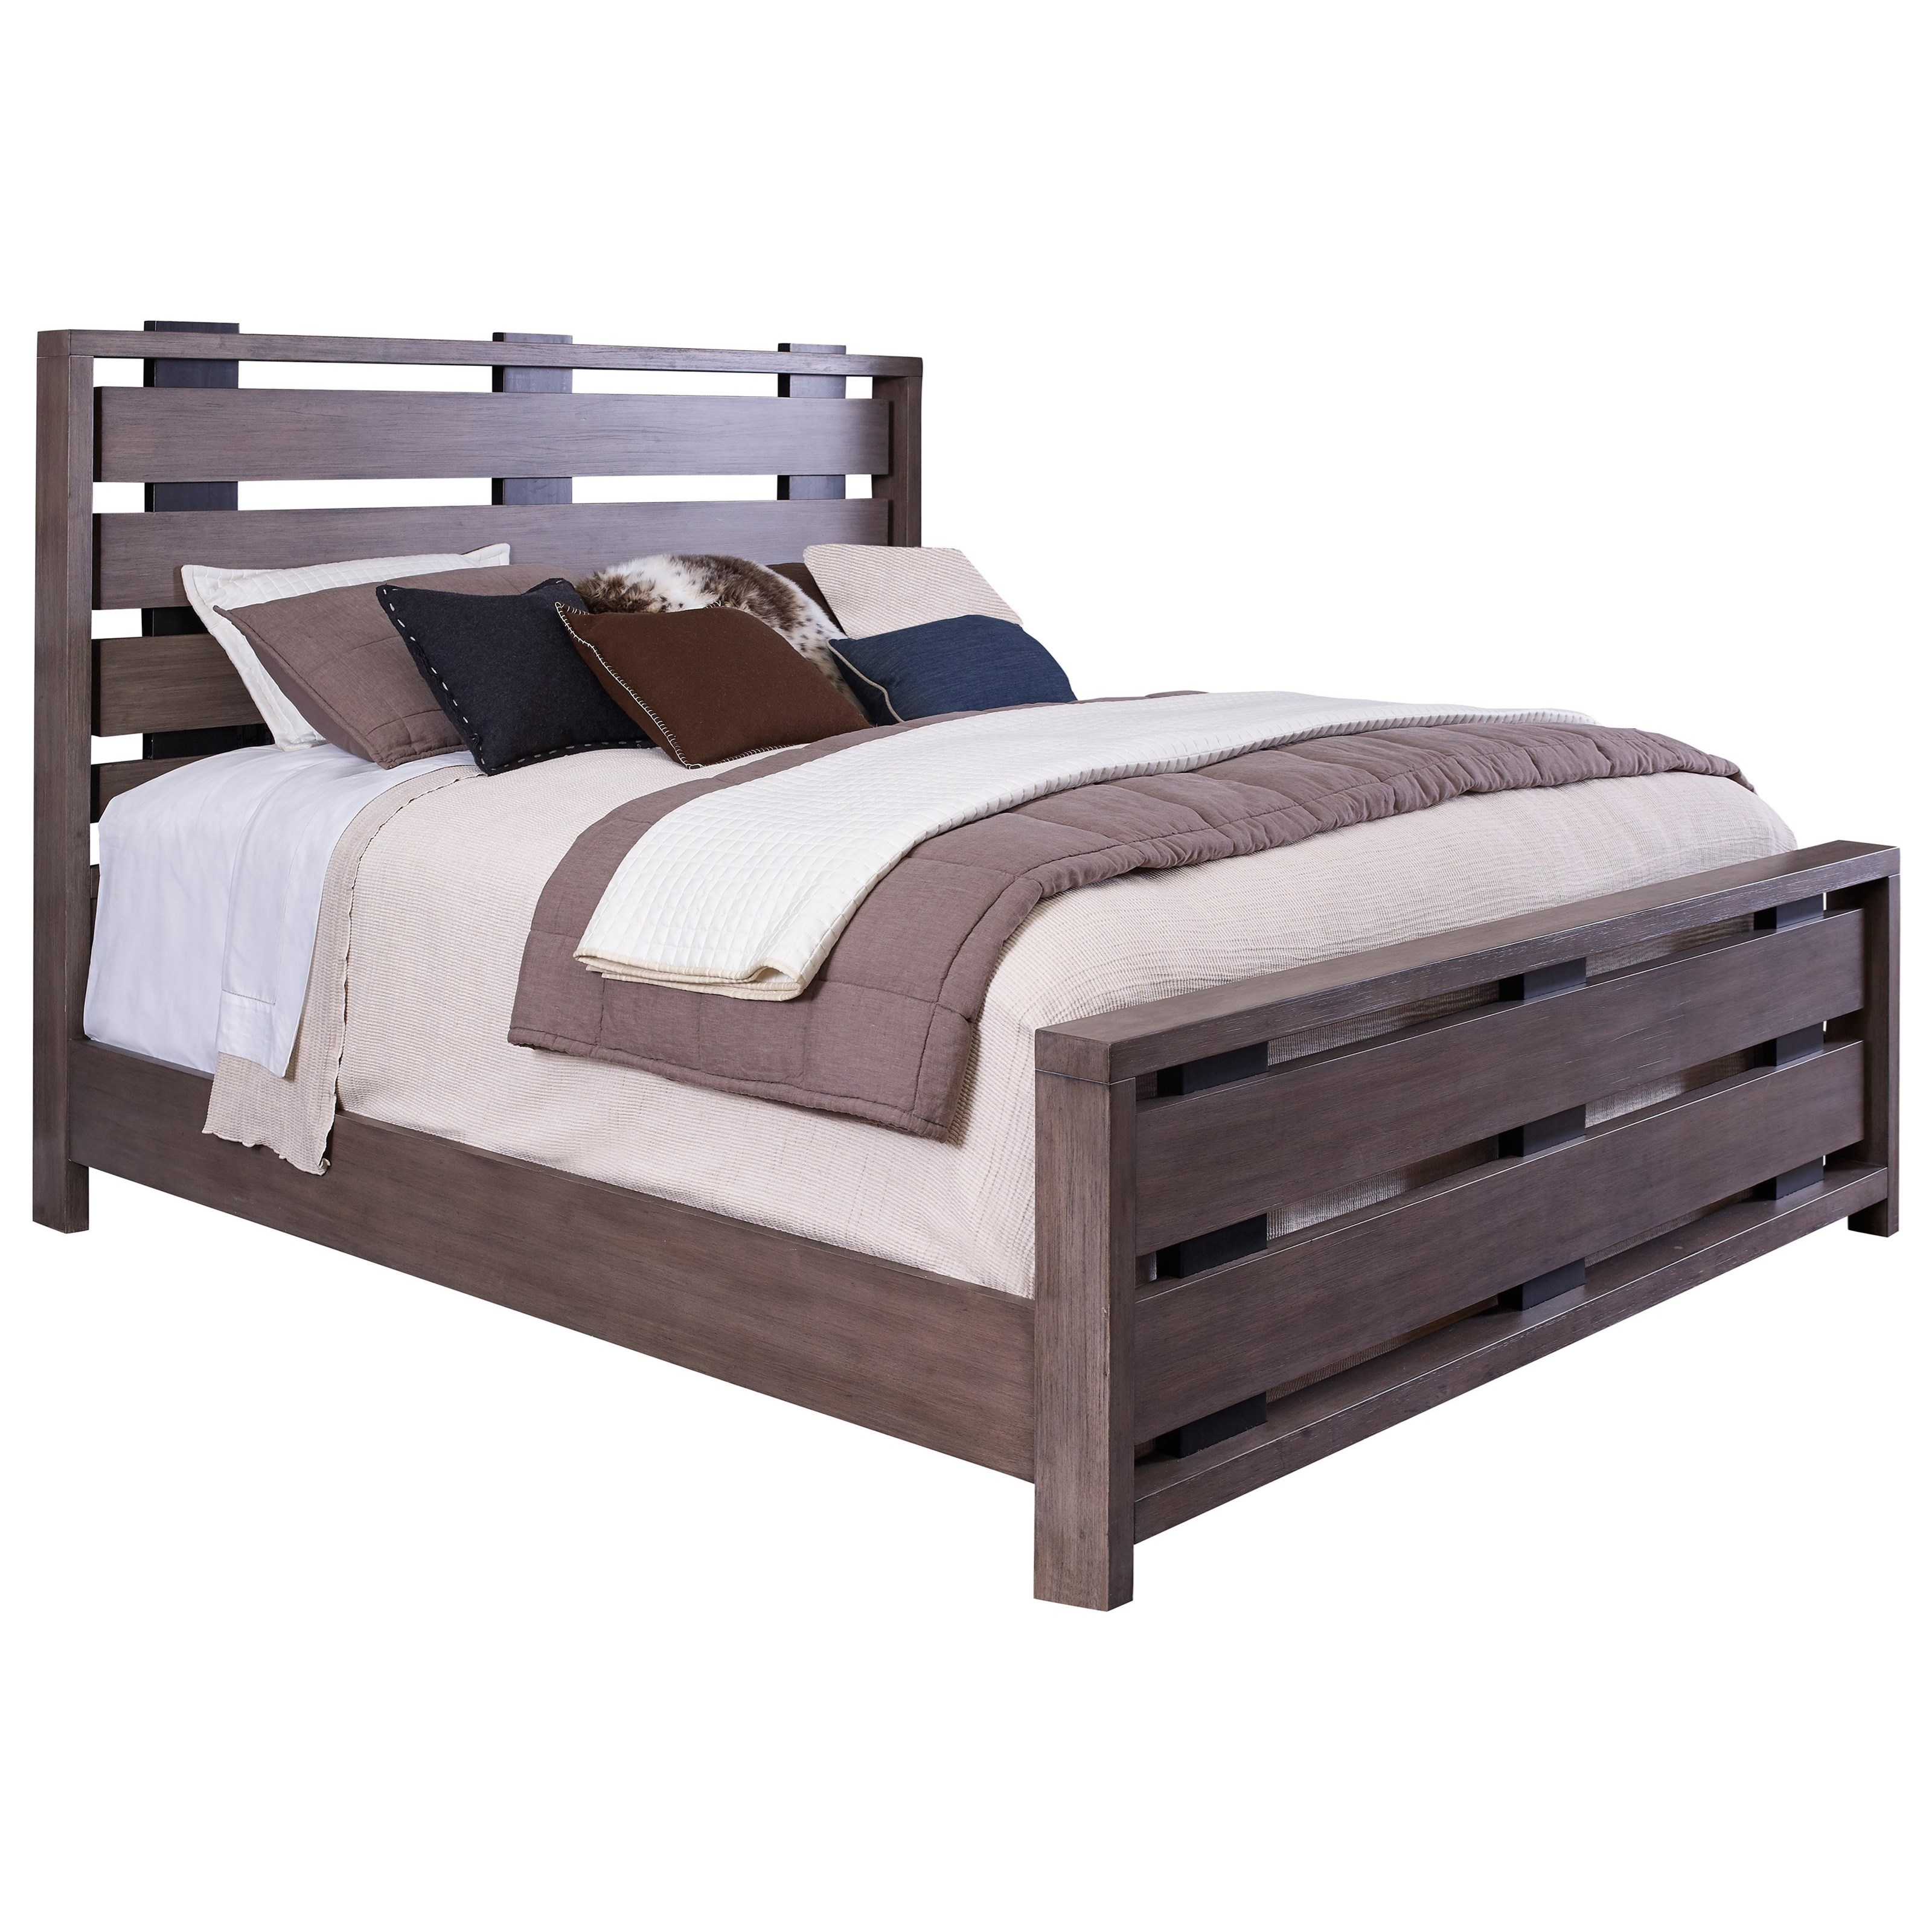 Broyhill Furniture Moreland Ave Queen Bed - Item Number: 5815-256+257+450